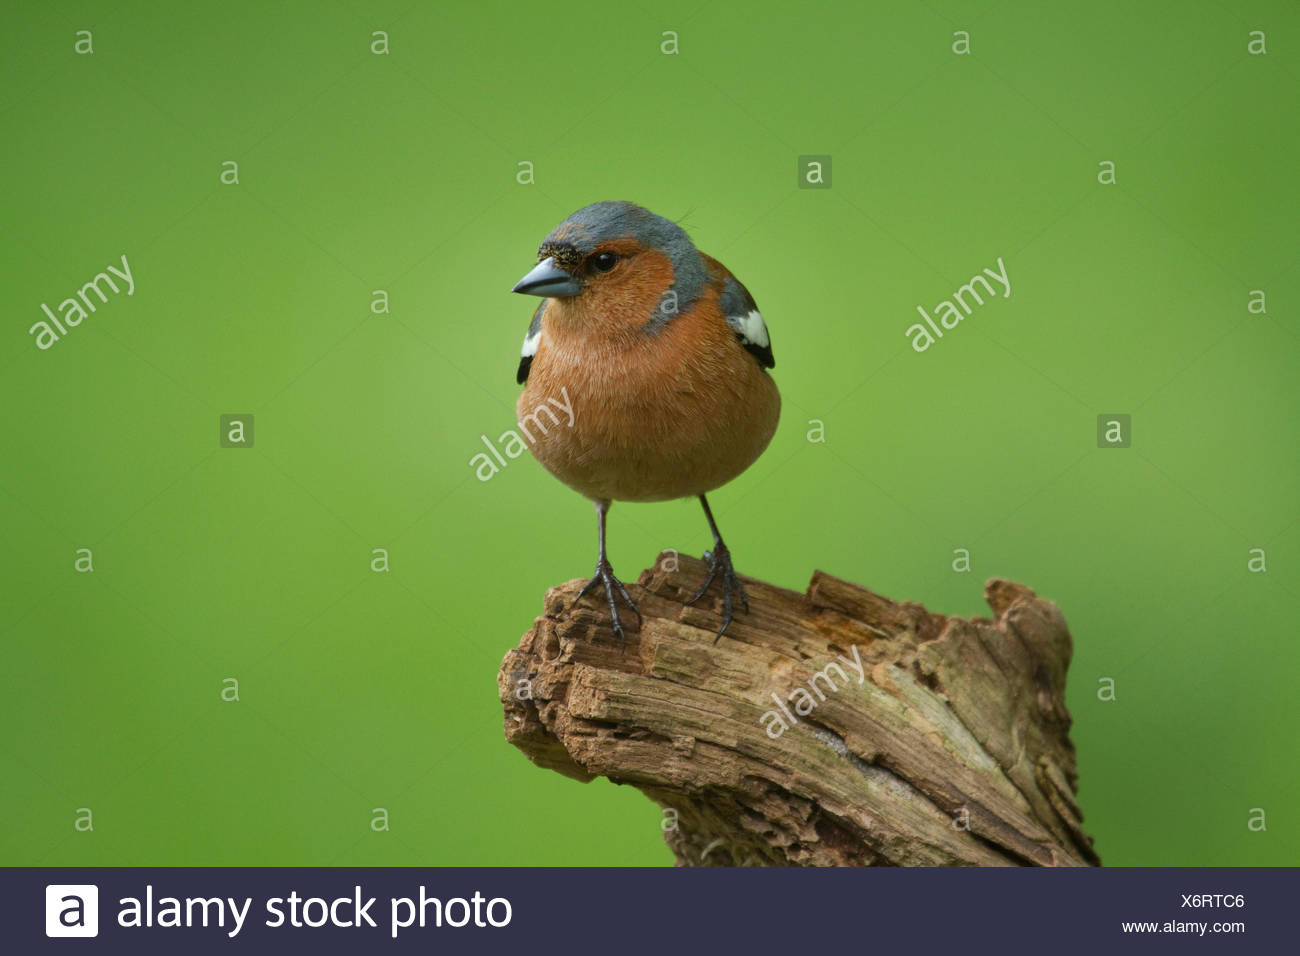 chaffinch (Fringilla coelebs), male on a branch, Germany - Stock Image